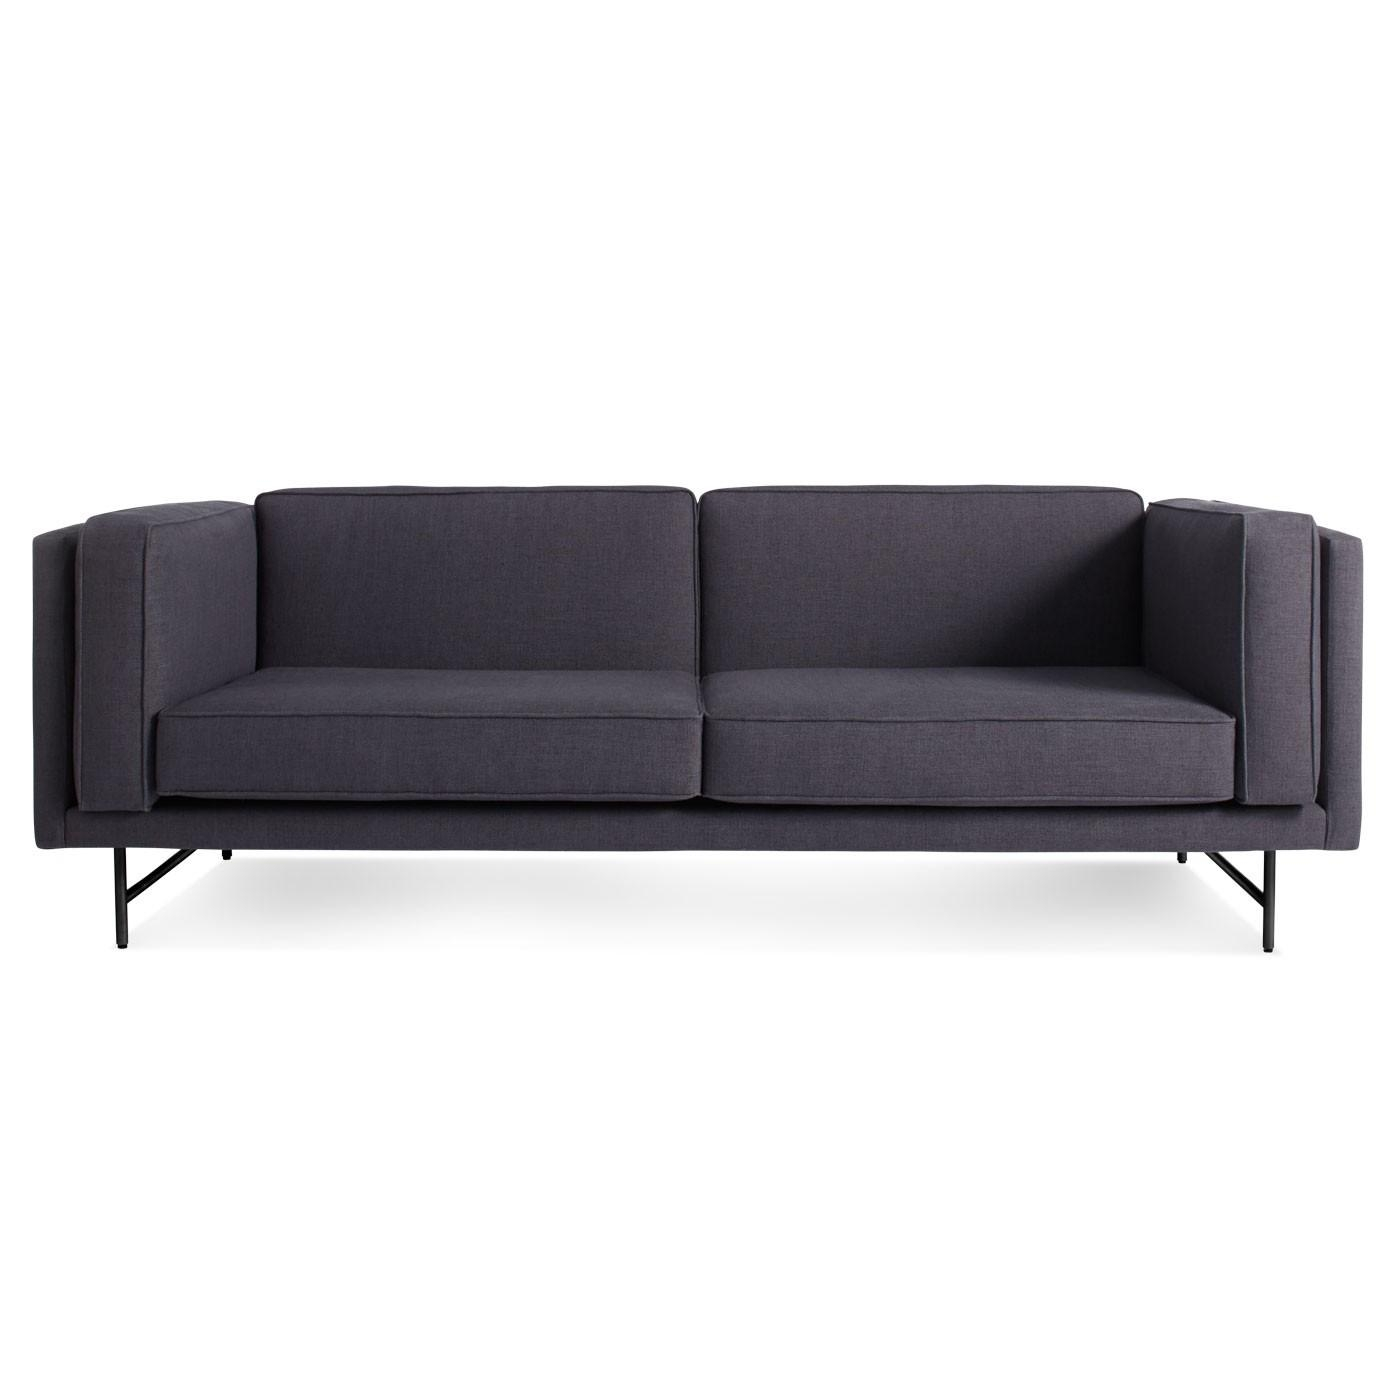 "Bank 80"" Low Profile Sofa – Deep Seat Sofas 